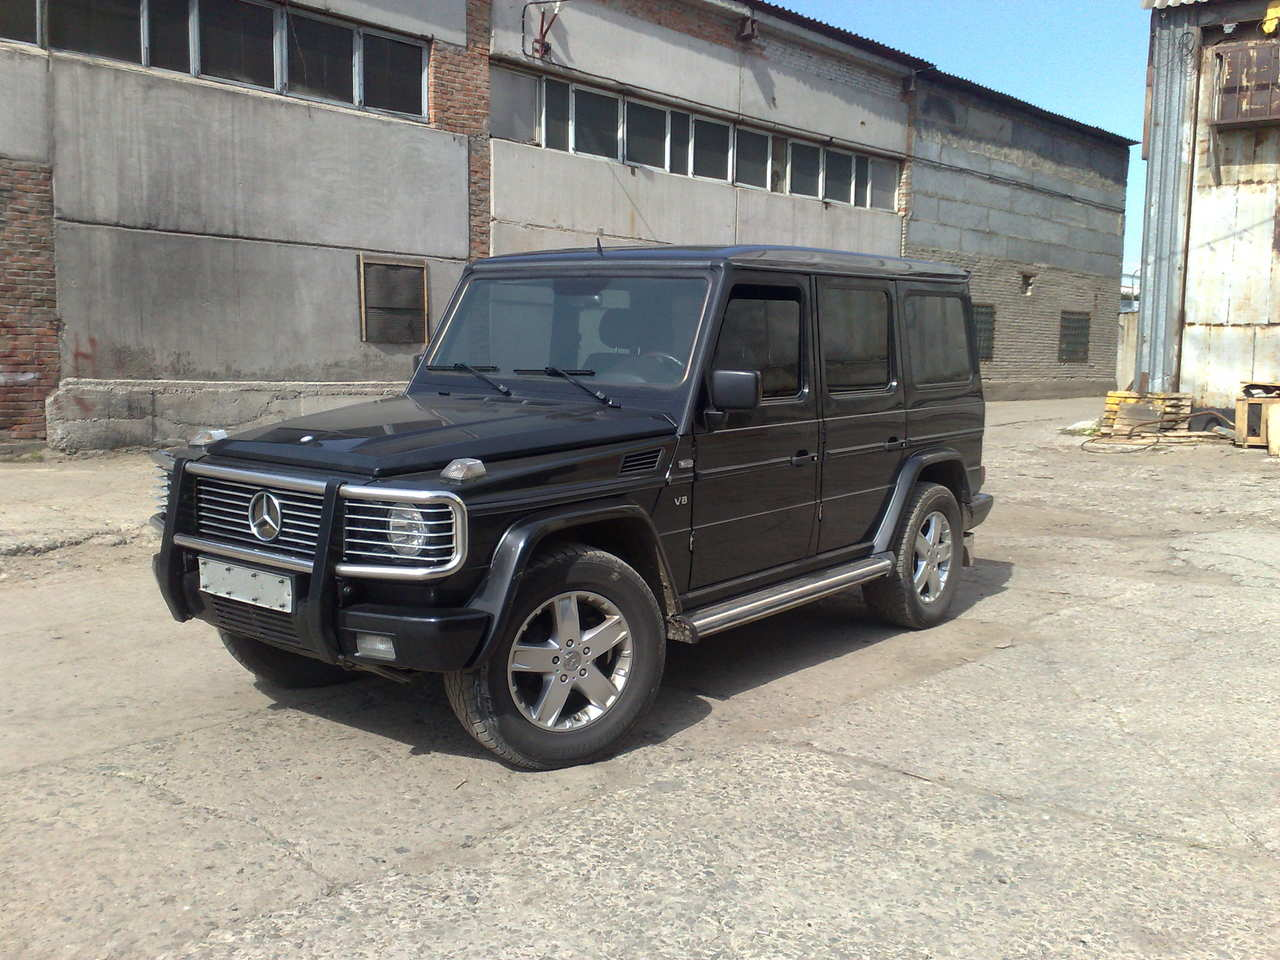 2000 mercedes benz g class pictures gasoline automatic for sale. Black Bedroom Furniture Sets. Home Design Ideas